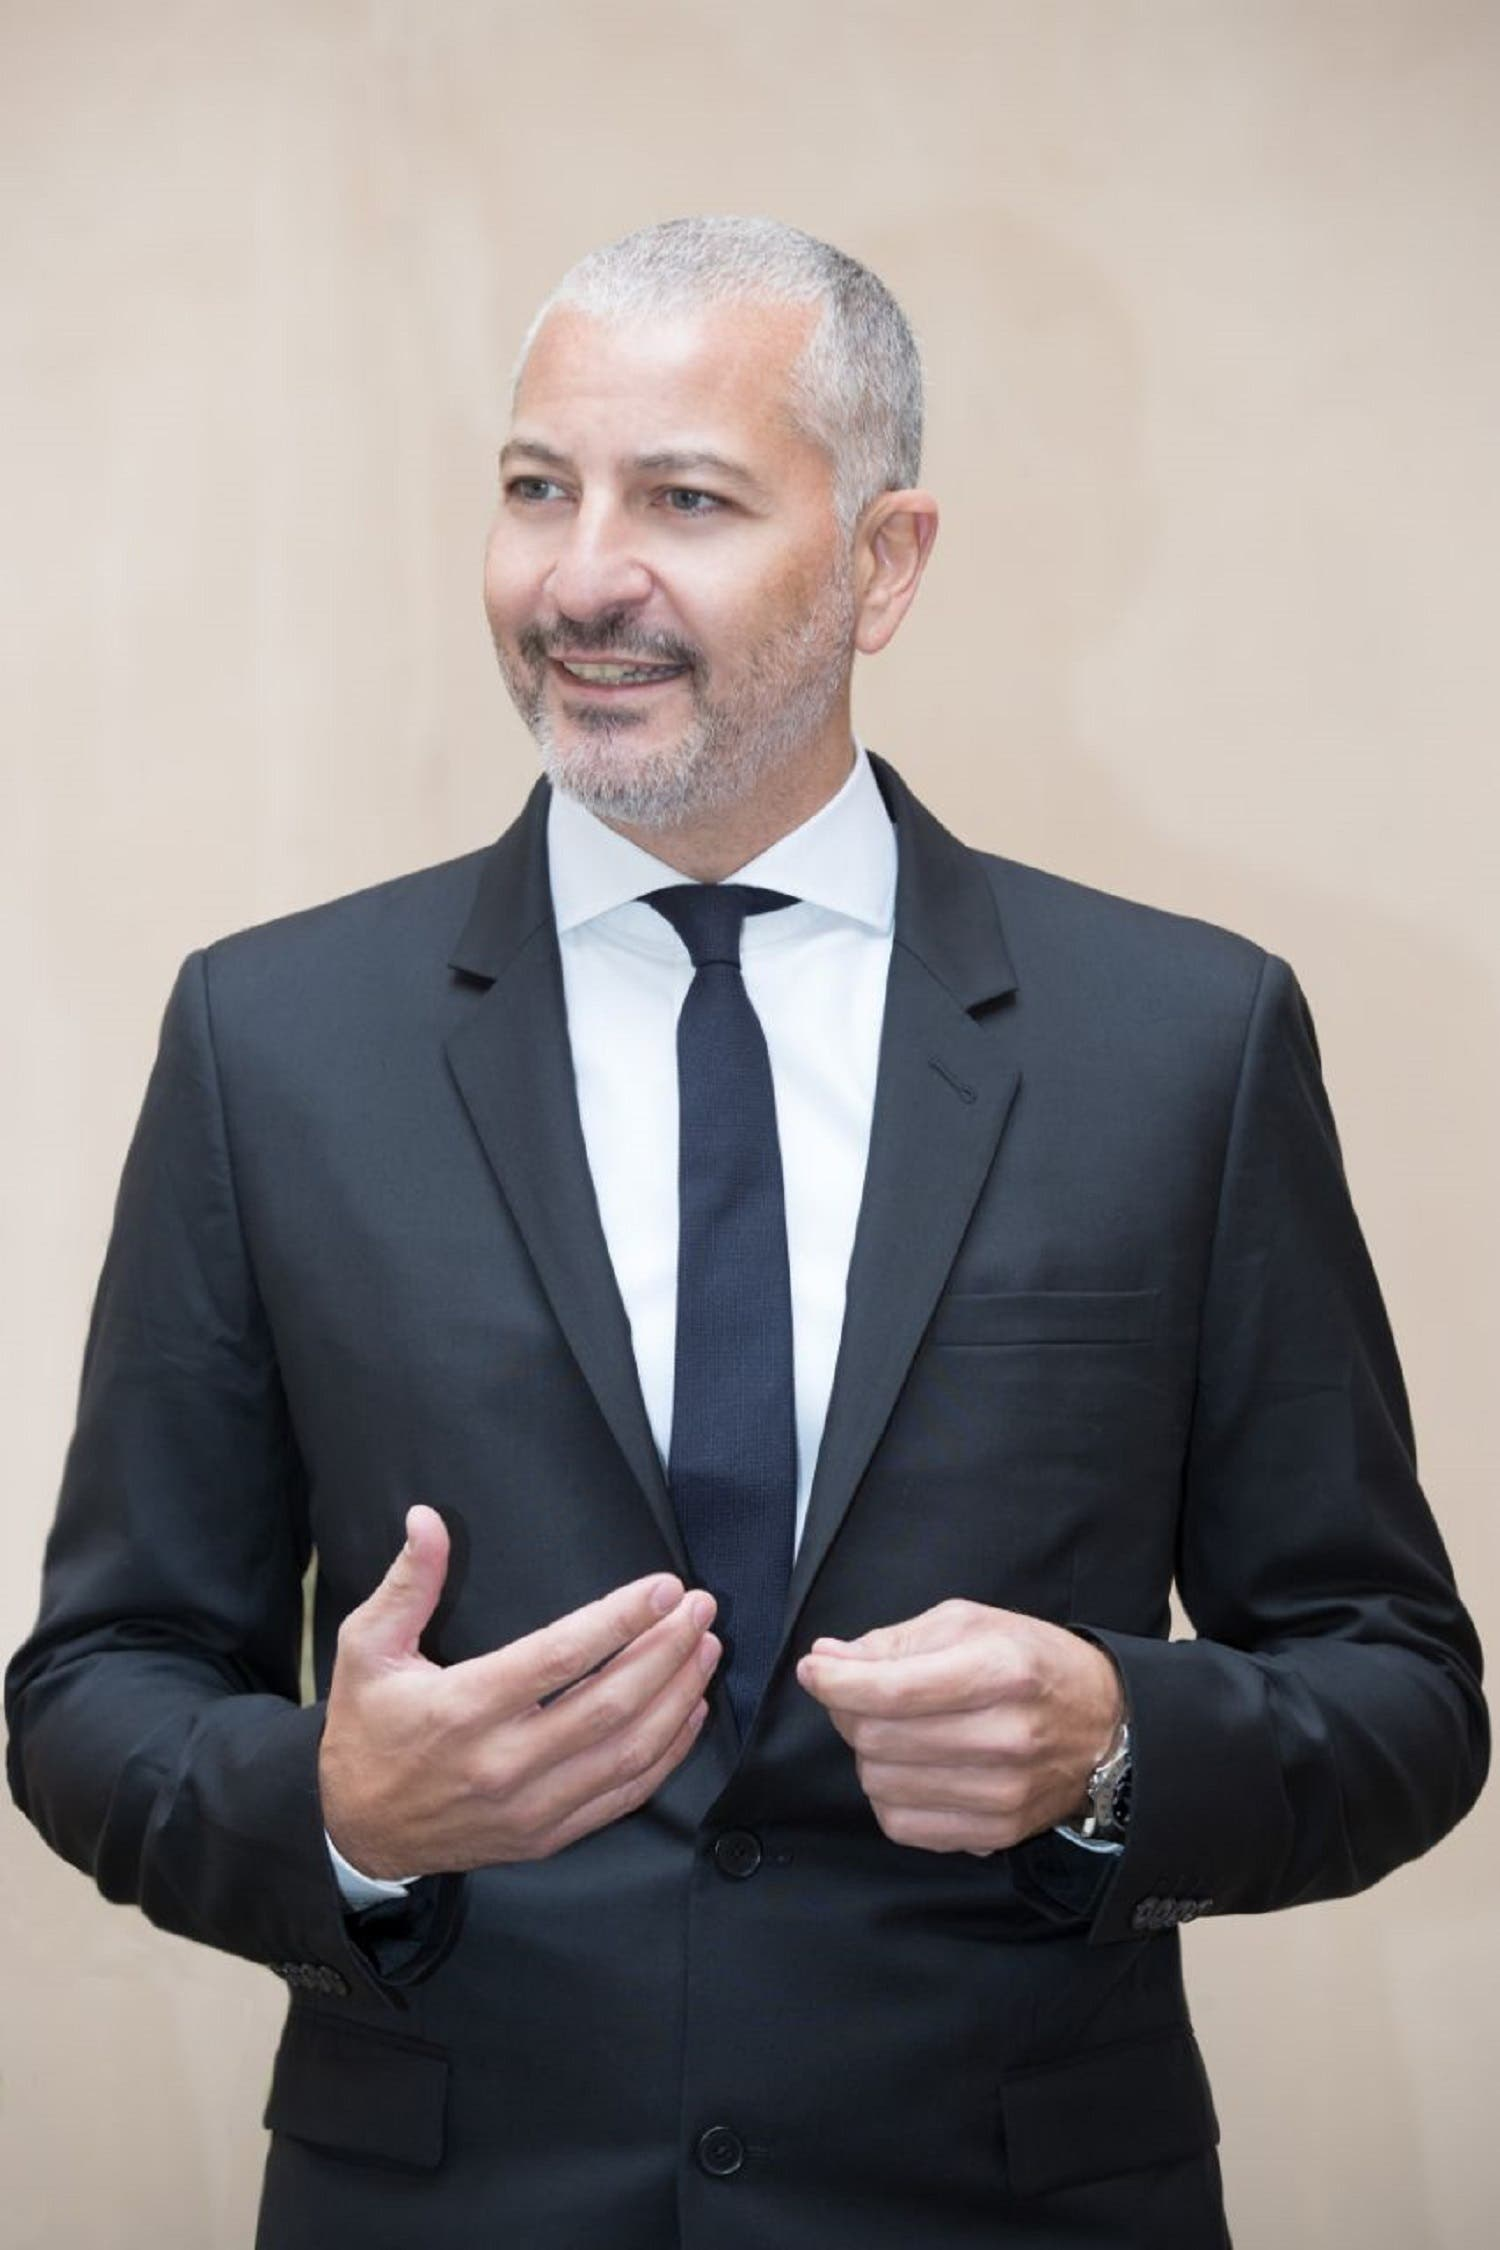 Rabih Saab, Travelport's President & Managing Director for Europe, Middle East, Africa and South Asia. (Supplied)